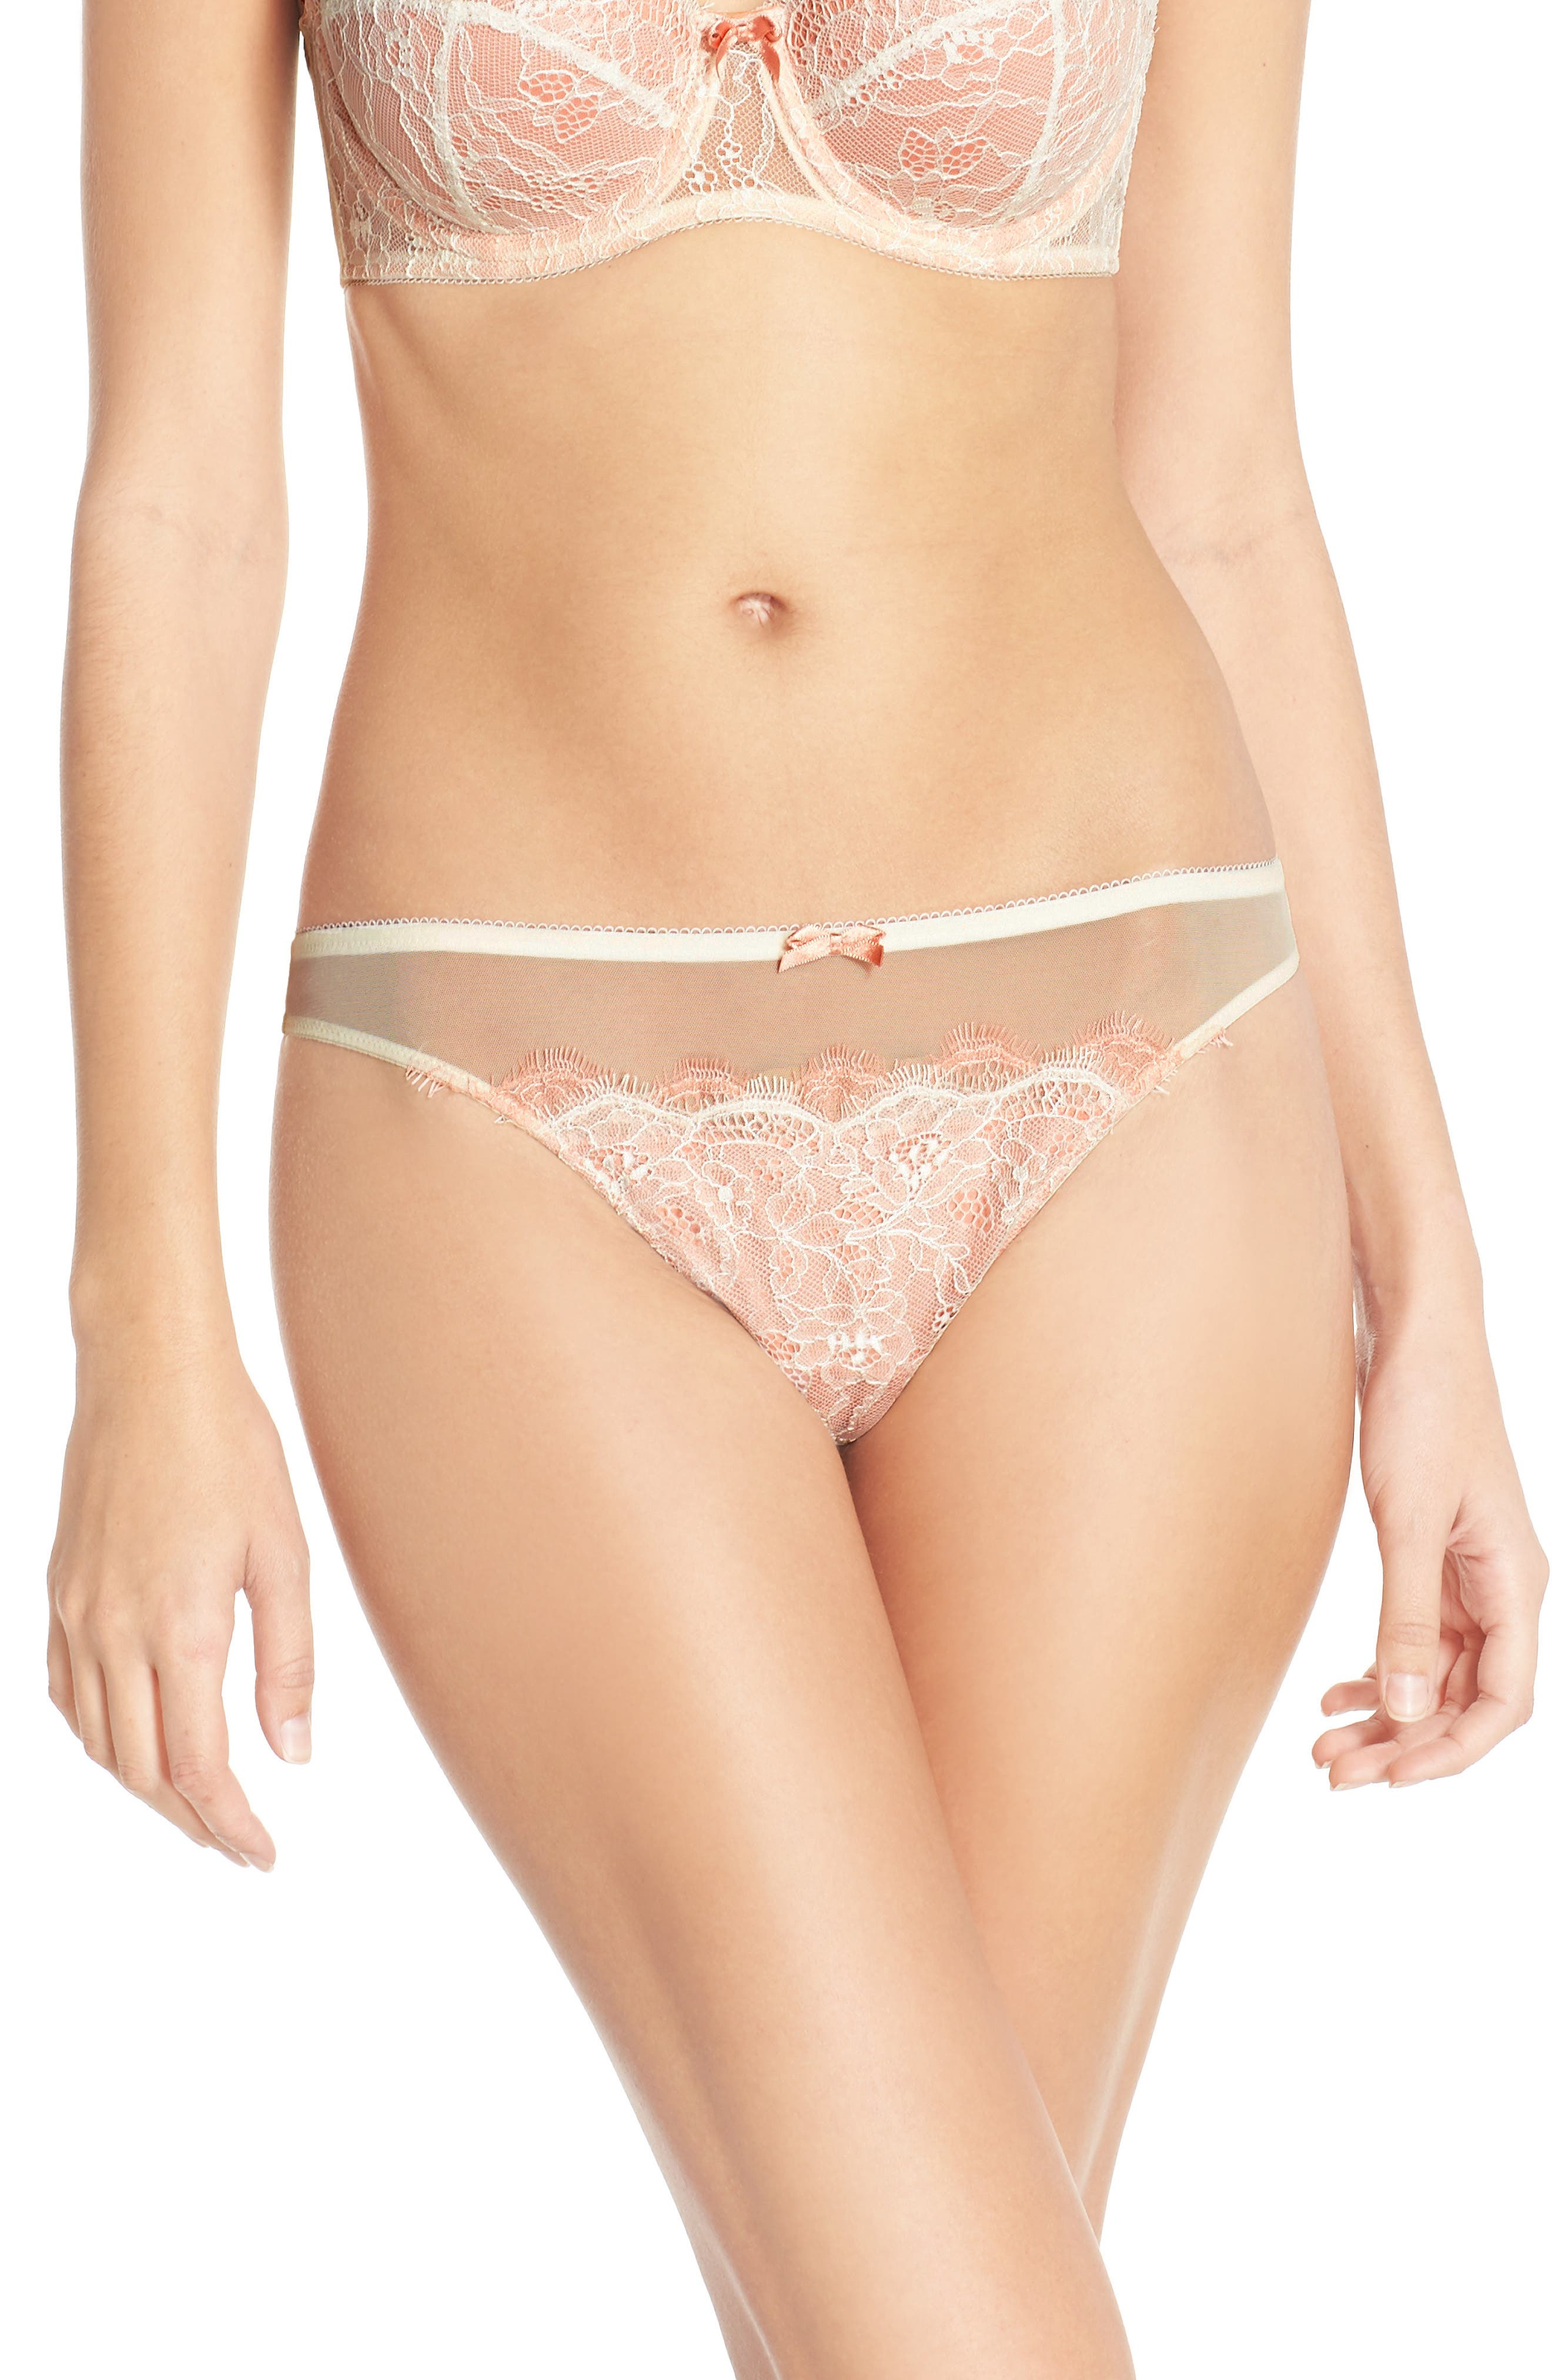 'b.sultry' Lace Front Thong,                             Alternate thumbnail 5, color,                             VANILLA ICE/ PEACH BEIGE